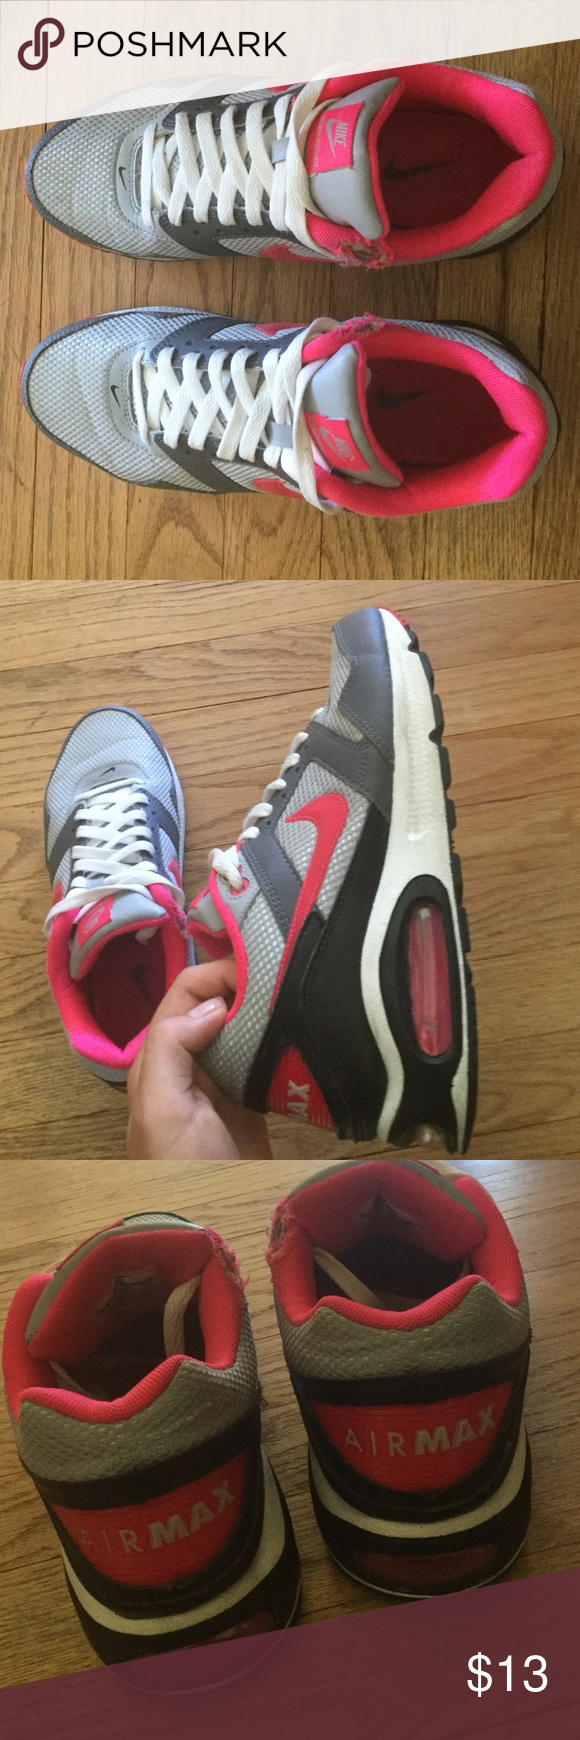 Nike air max hot pink, size 9 in women's They look pretty new besides the two holes in the shoes. Nike Shoes Sneakers